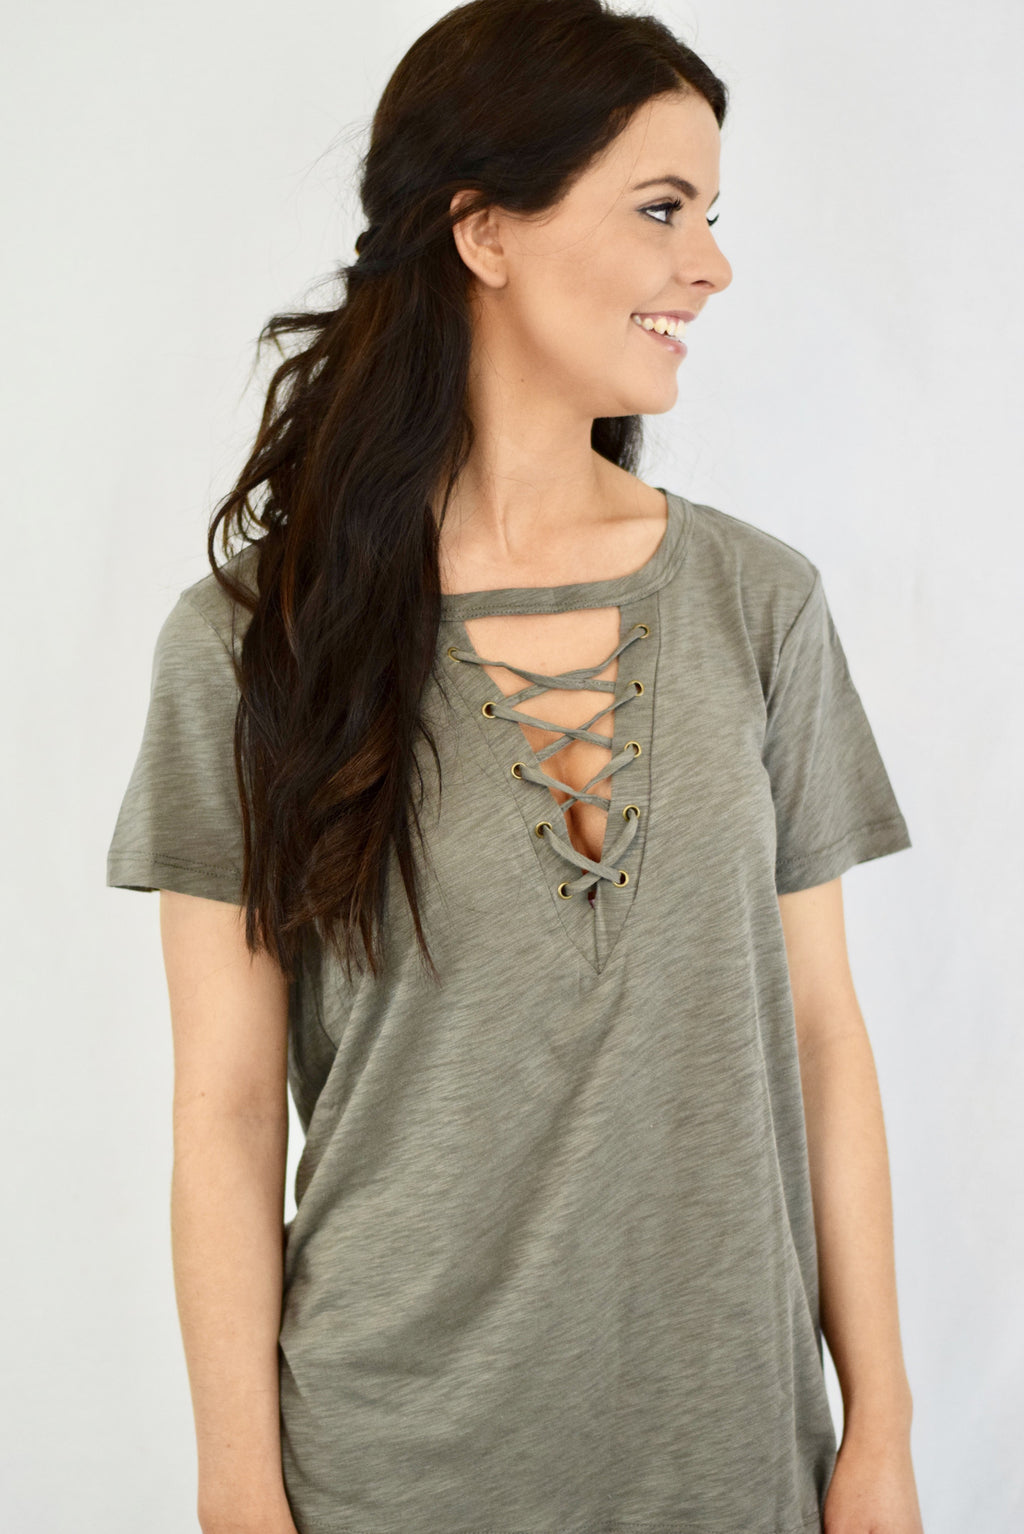 The Clare Top - Olive - Mint Pop Shop